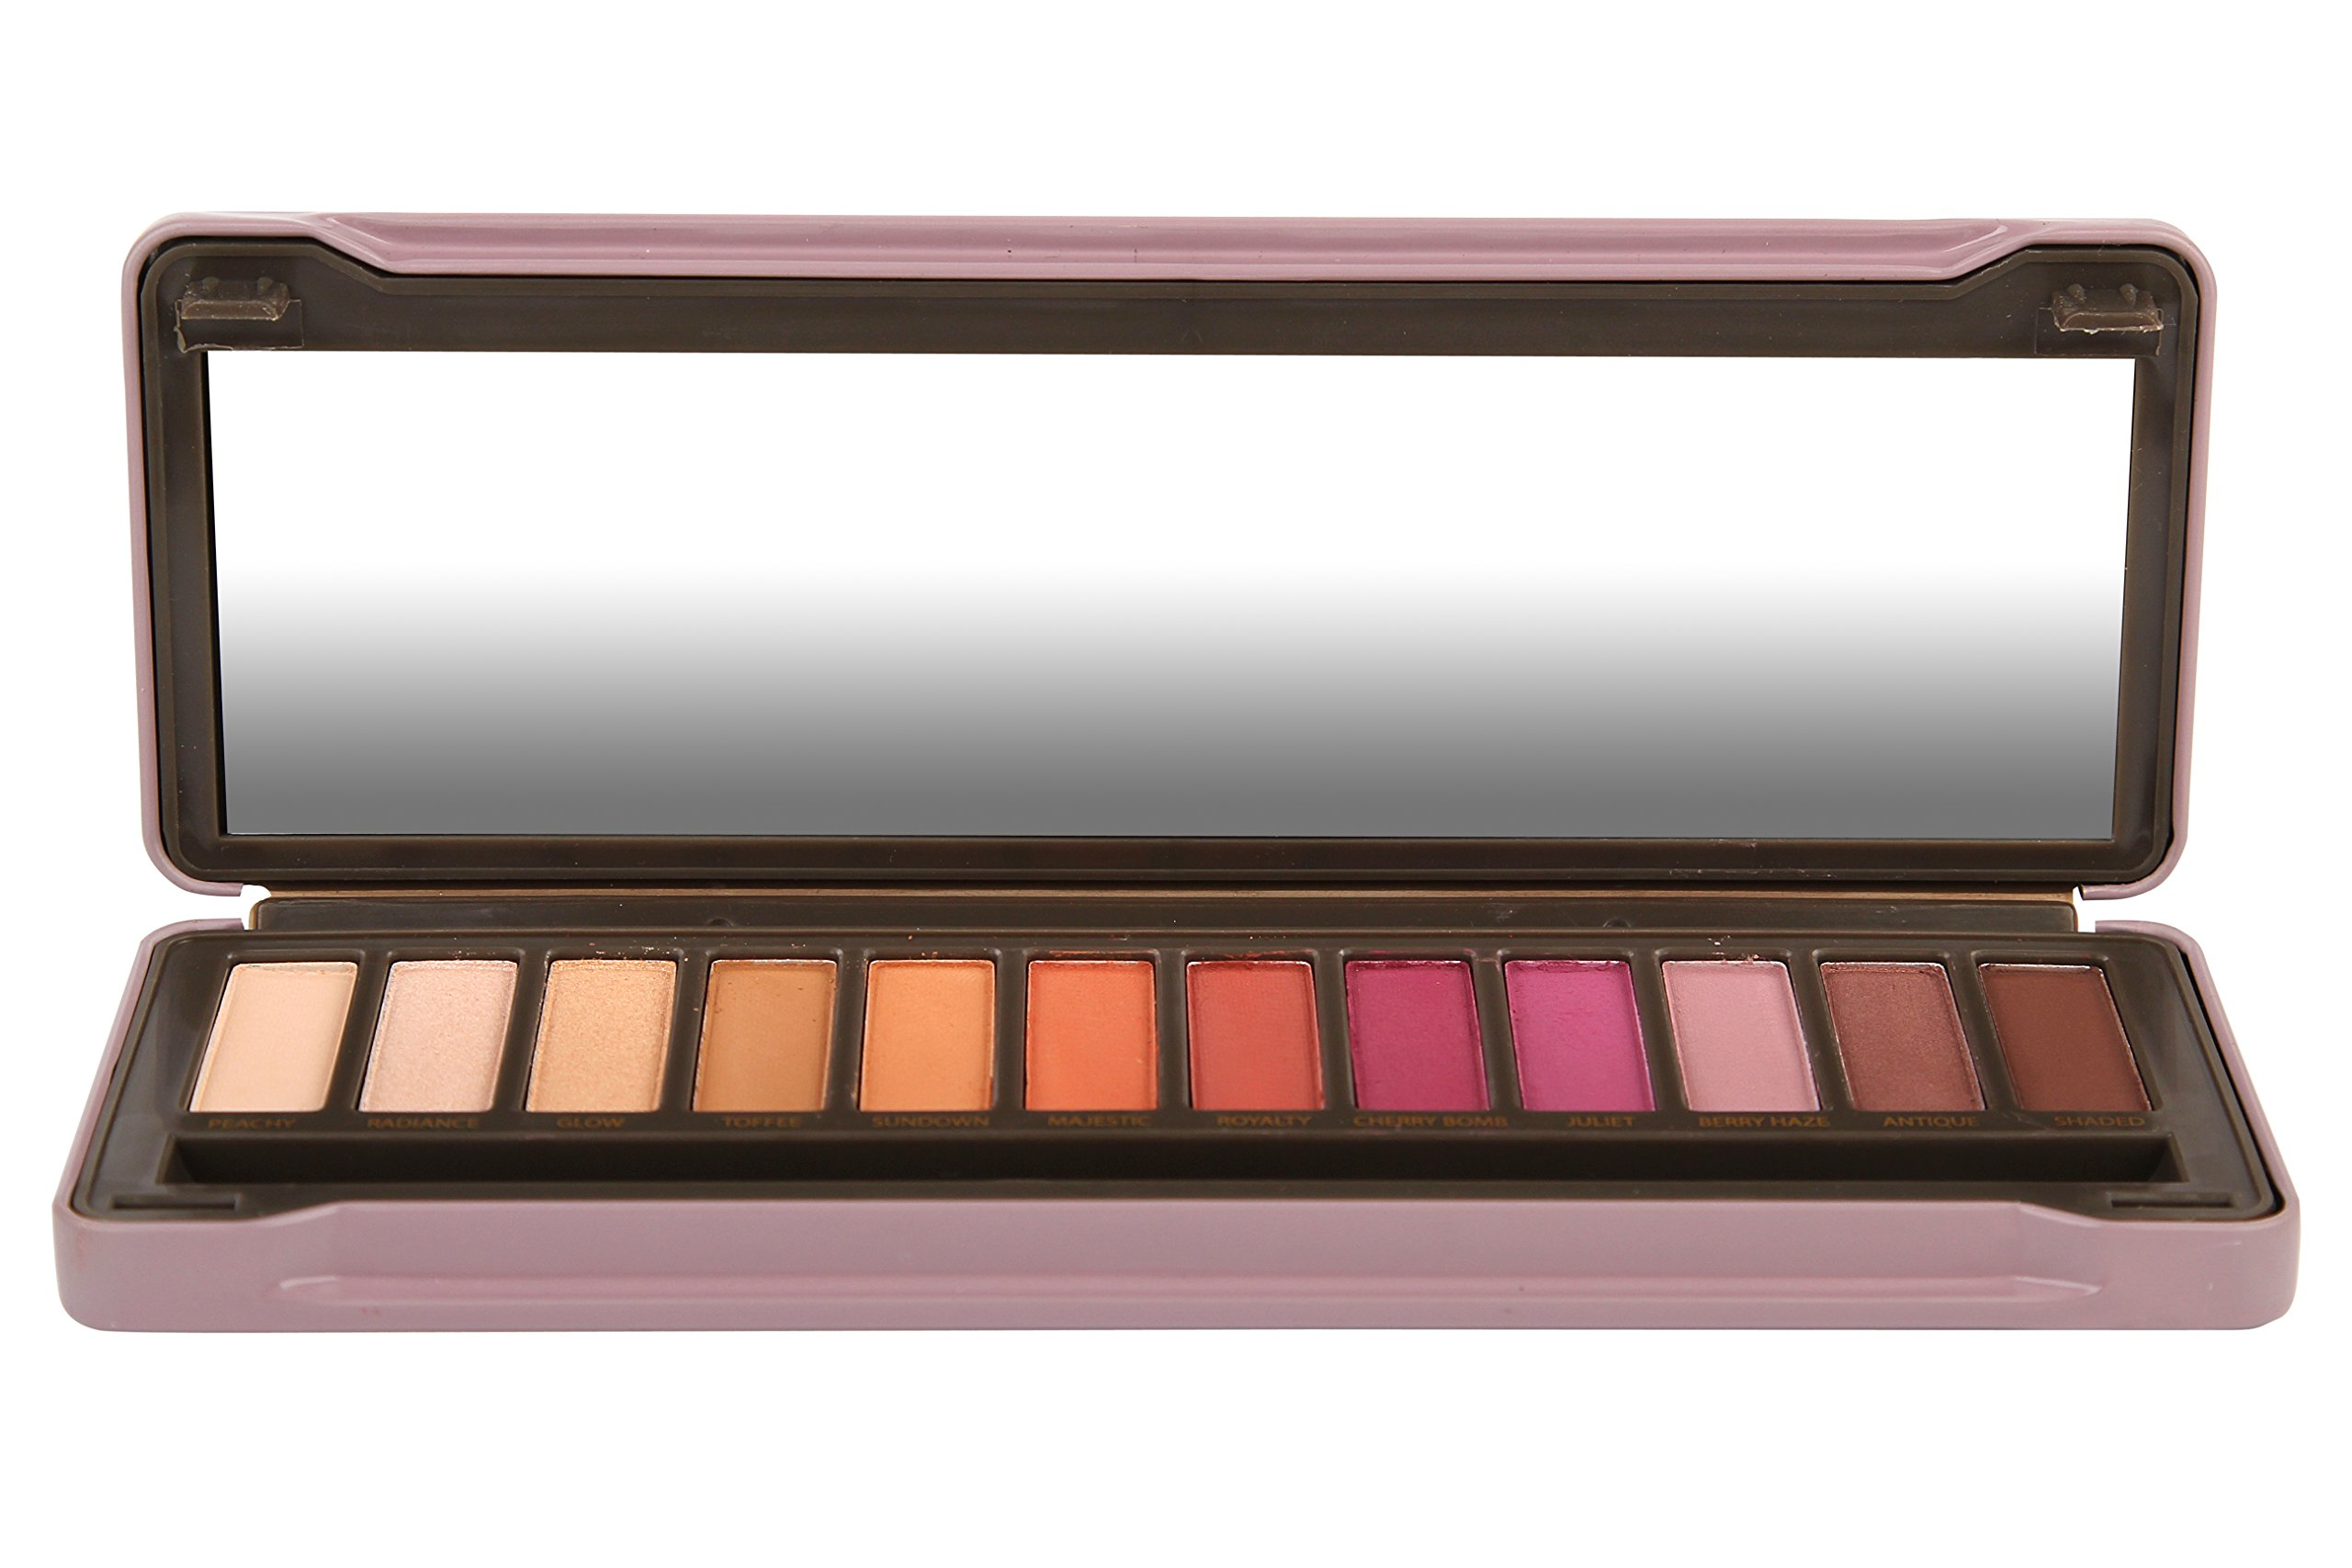 BYS Berries Eyeshadow Palette Tin with Mirror Applicator 12 Matte & Metallic Shades by BYS (Image #4)